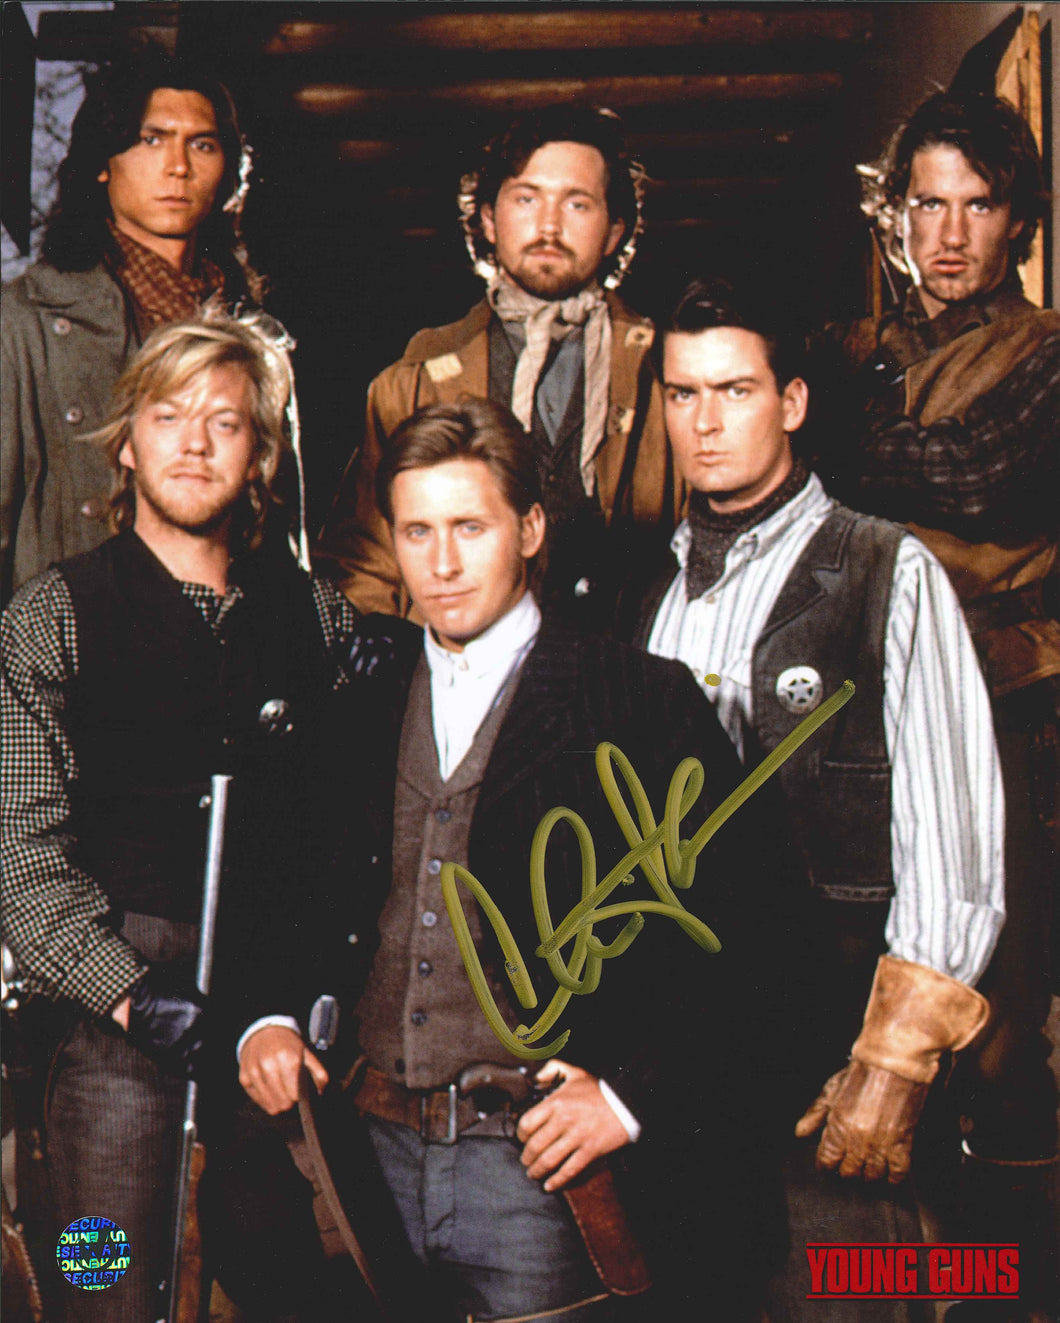 Charlie Sheen Signed Young Guns Photo